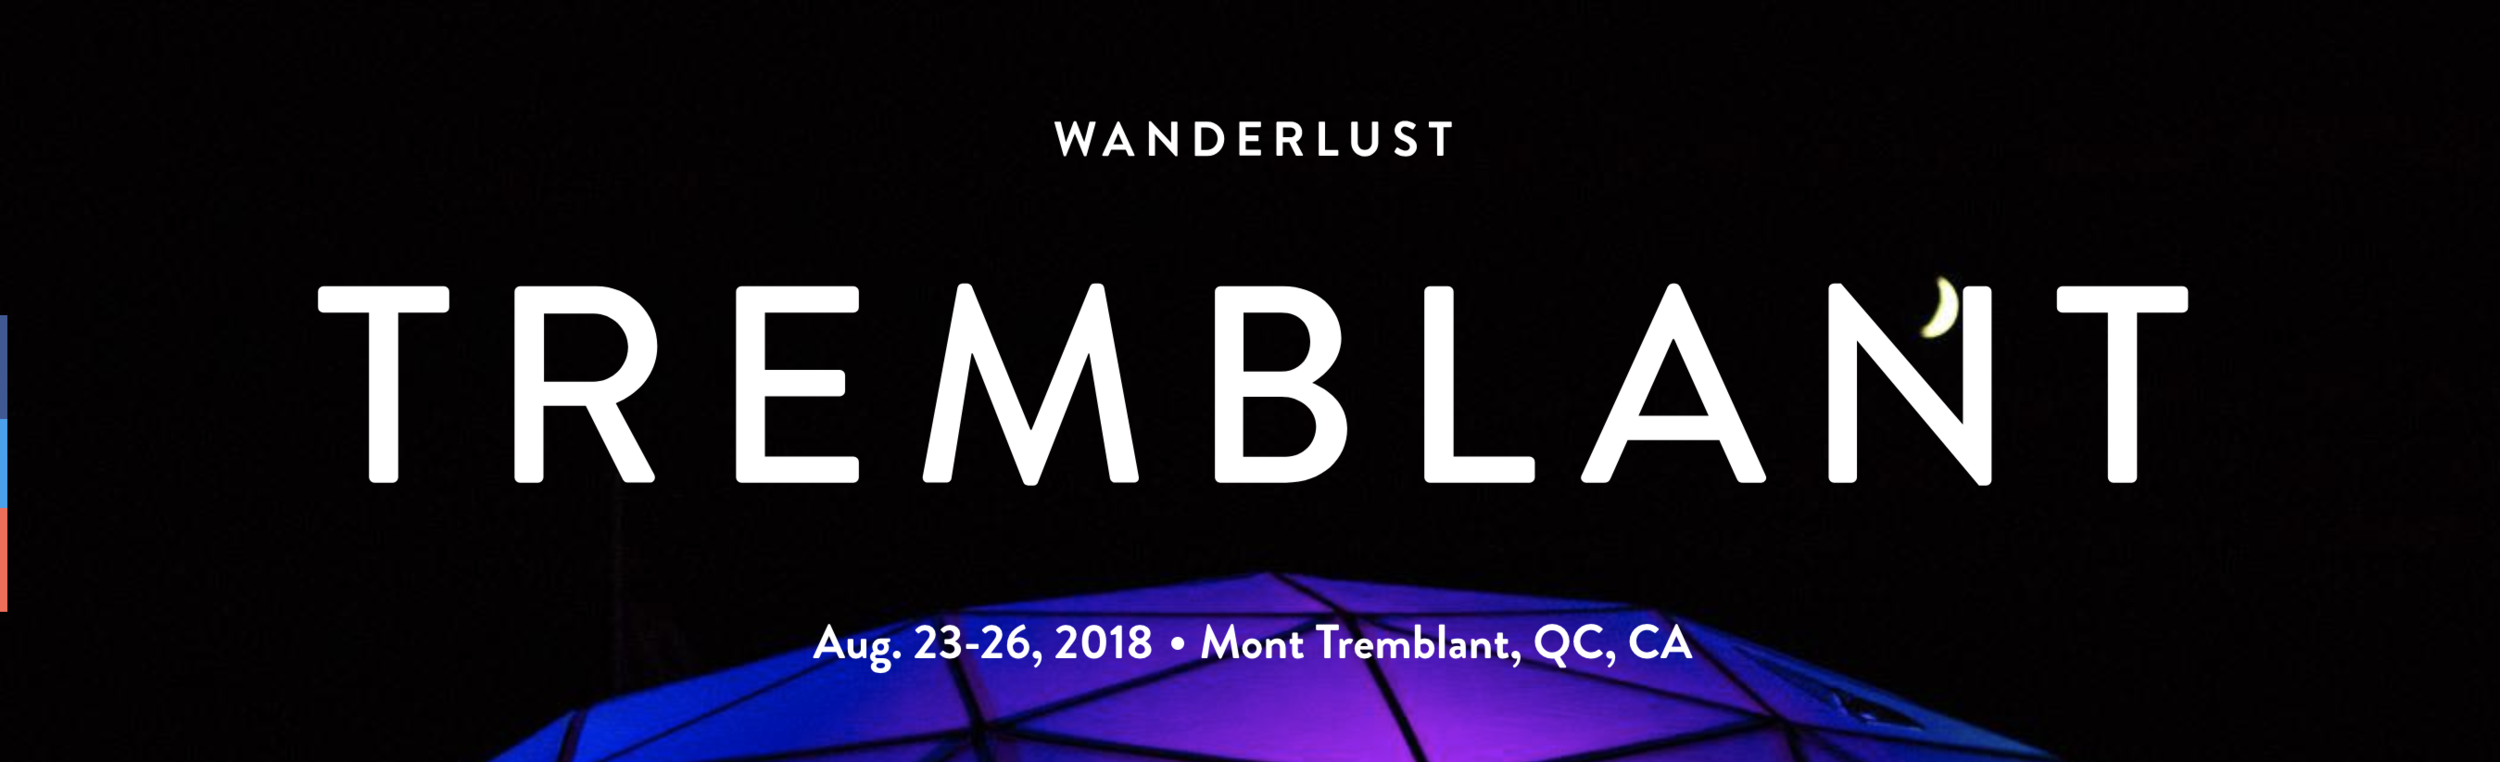 Come by our booth at Wanderlust Mont Tremblant or join us for our Talisman-making Workshops! Sandy will be offering in-person astrology readings as well - see you soon ;)